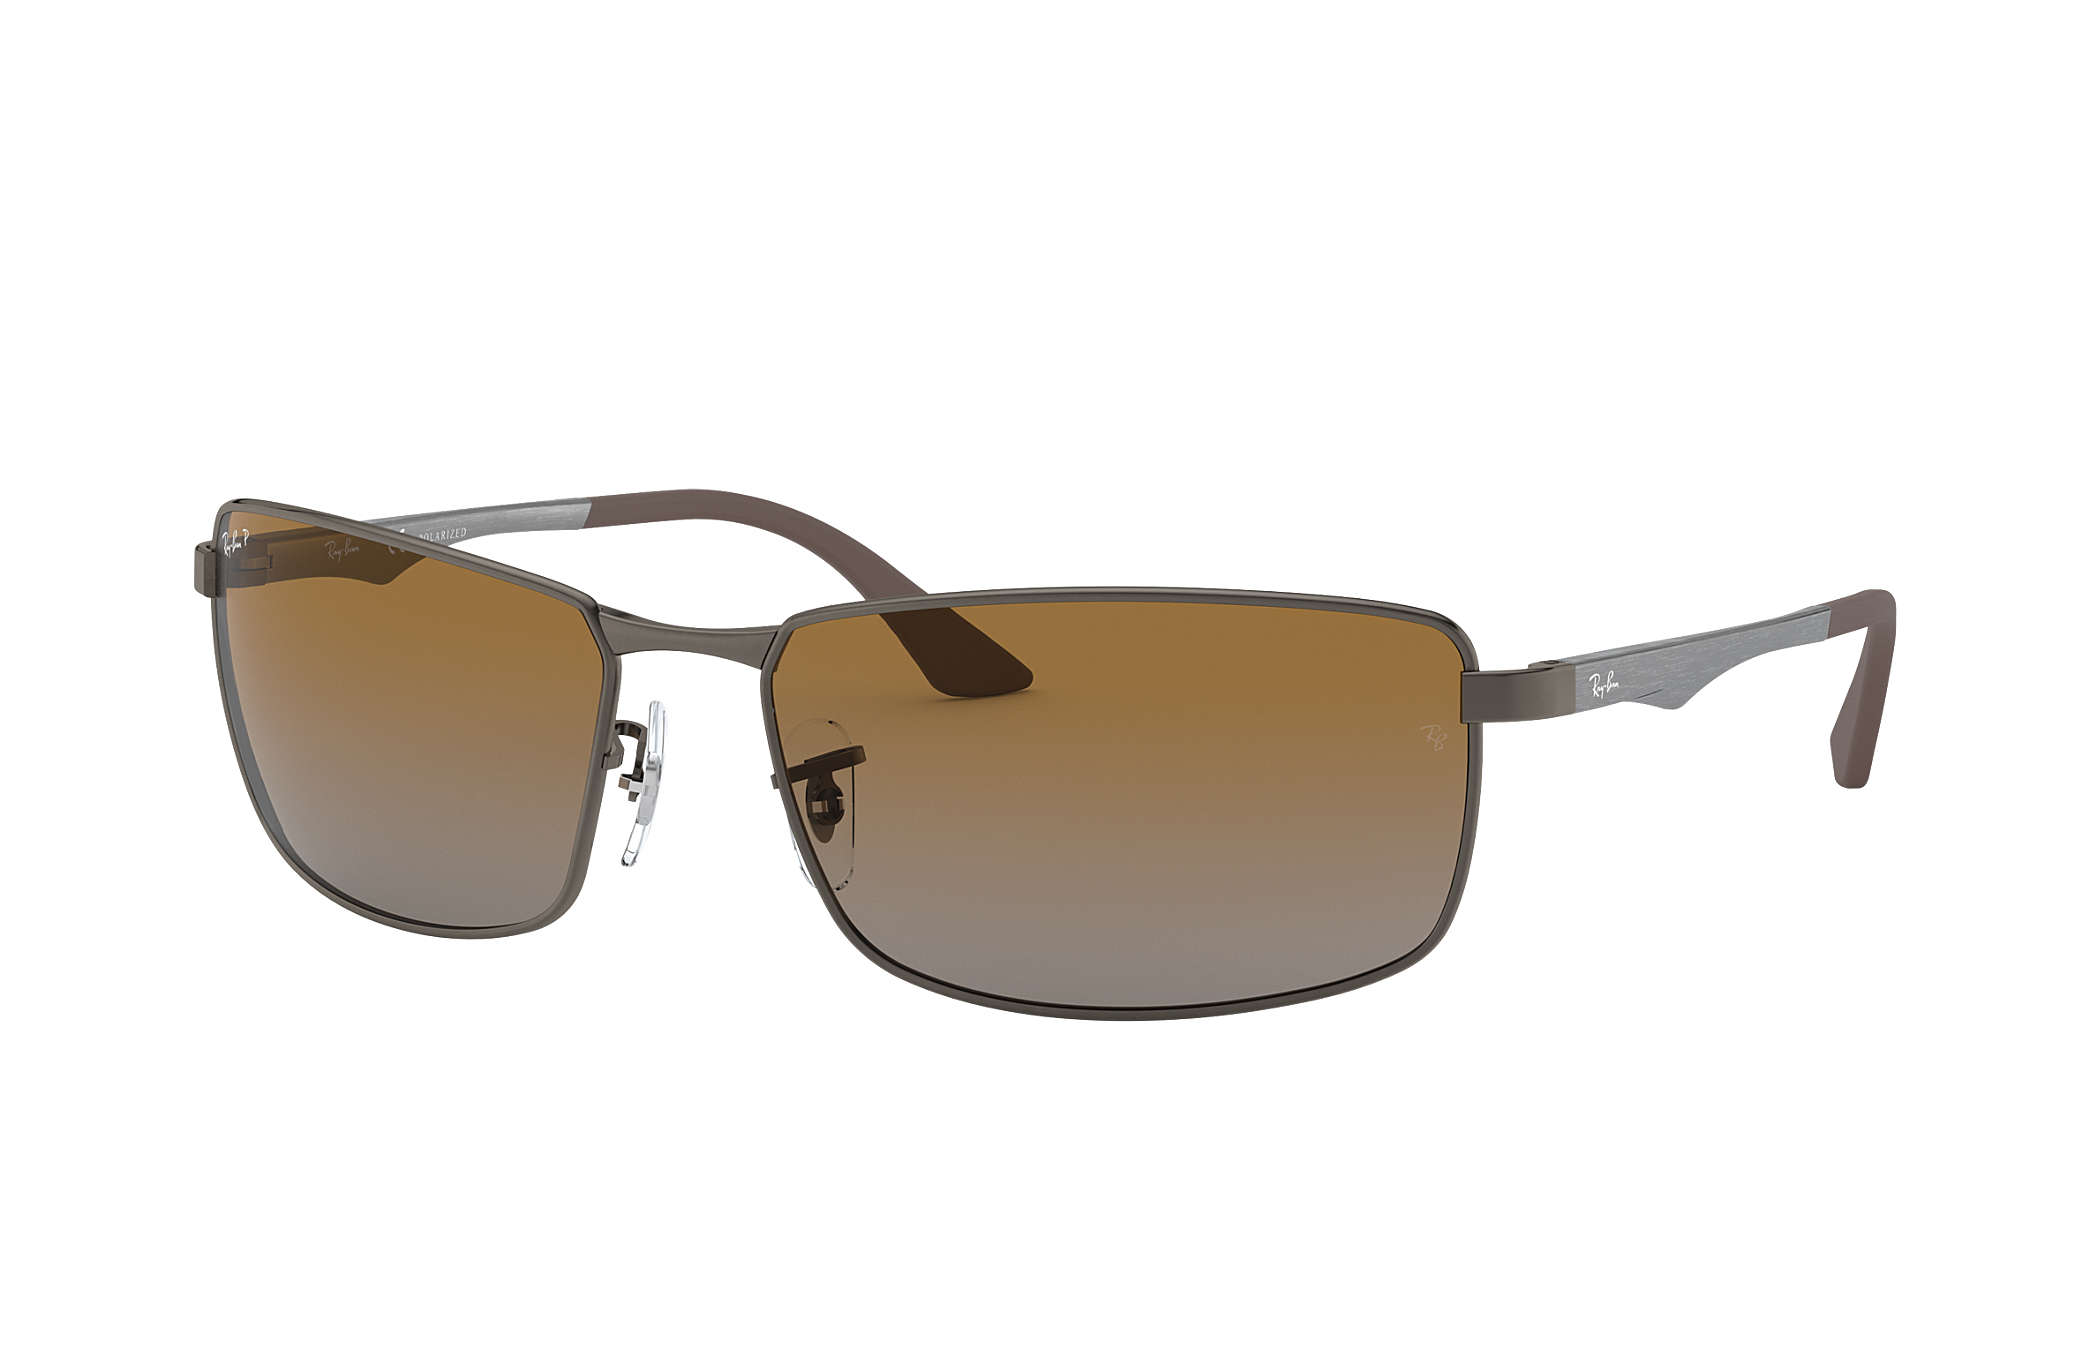 da3b2acf80f Ray-Ban RB3498 Gunmetal - Metal - Brown Polarized Lenses ...